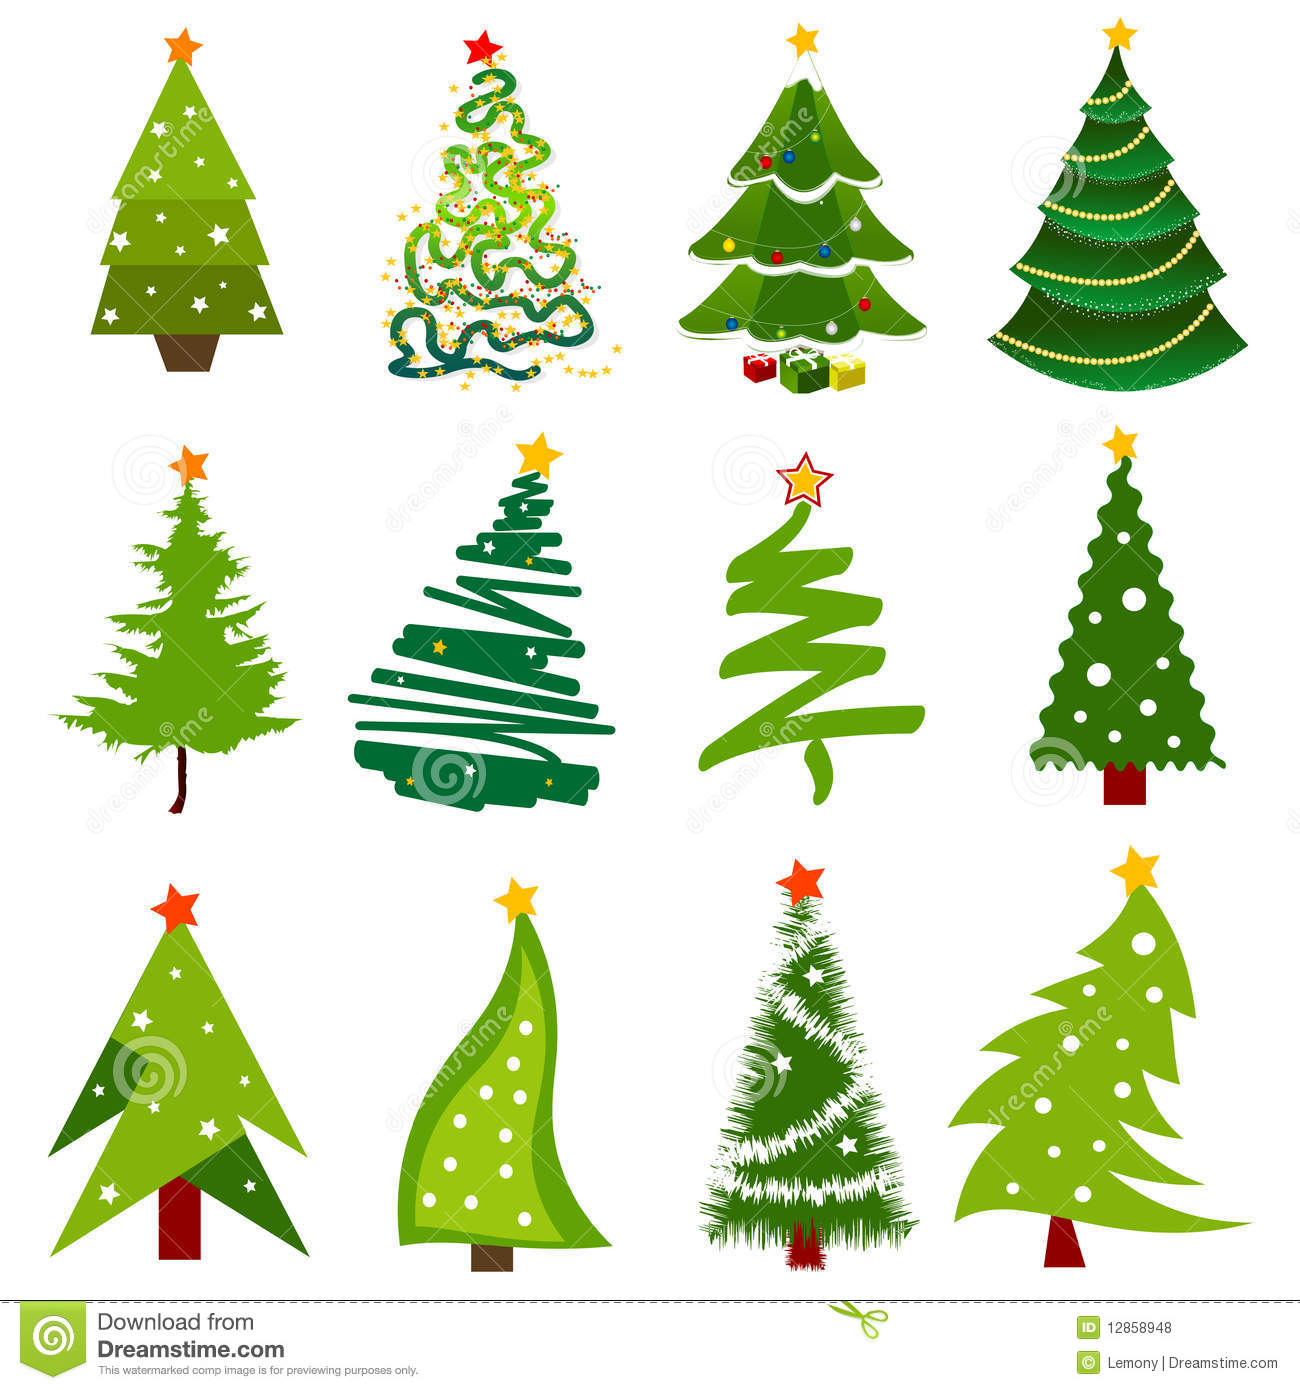 Colorful christmas tree of hands royalty free stock photos image - Christmas Tree Icons Royalty Free Stock Photos Image